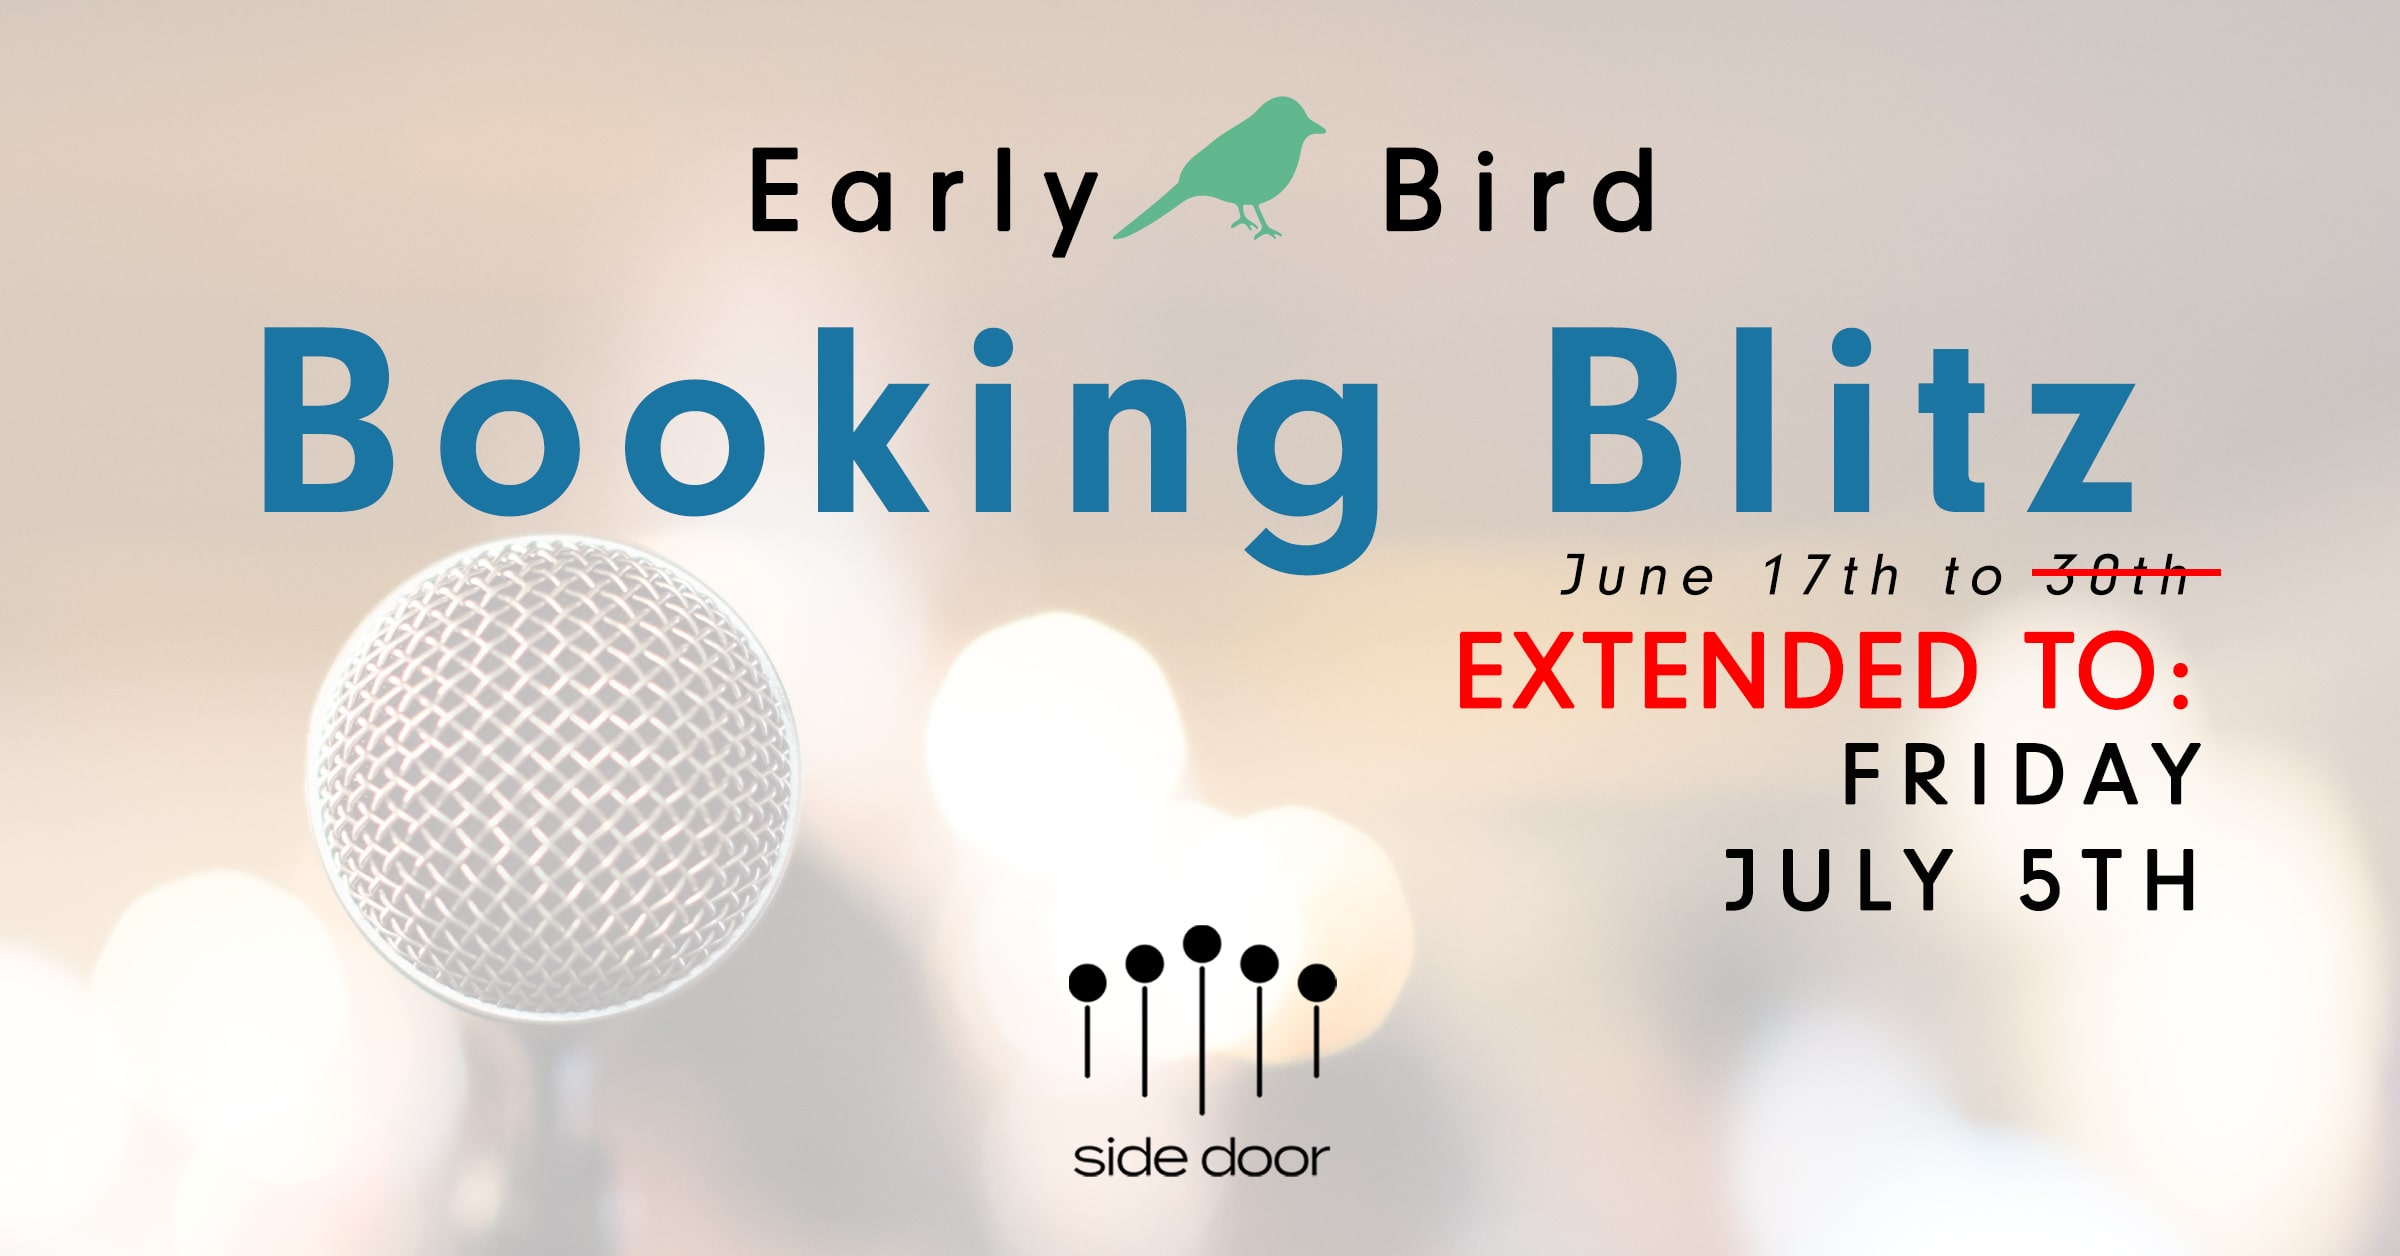 The Early Bird Booking Blitz has been EXTENDED to Friday July 5th! Happy booking!